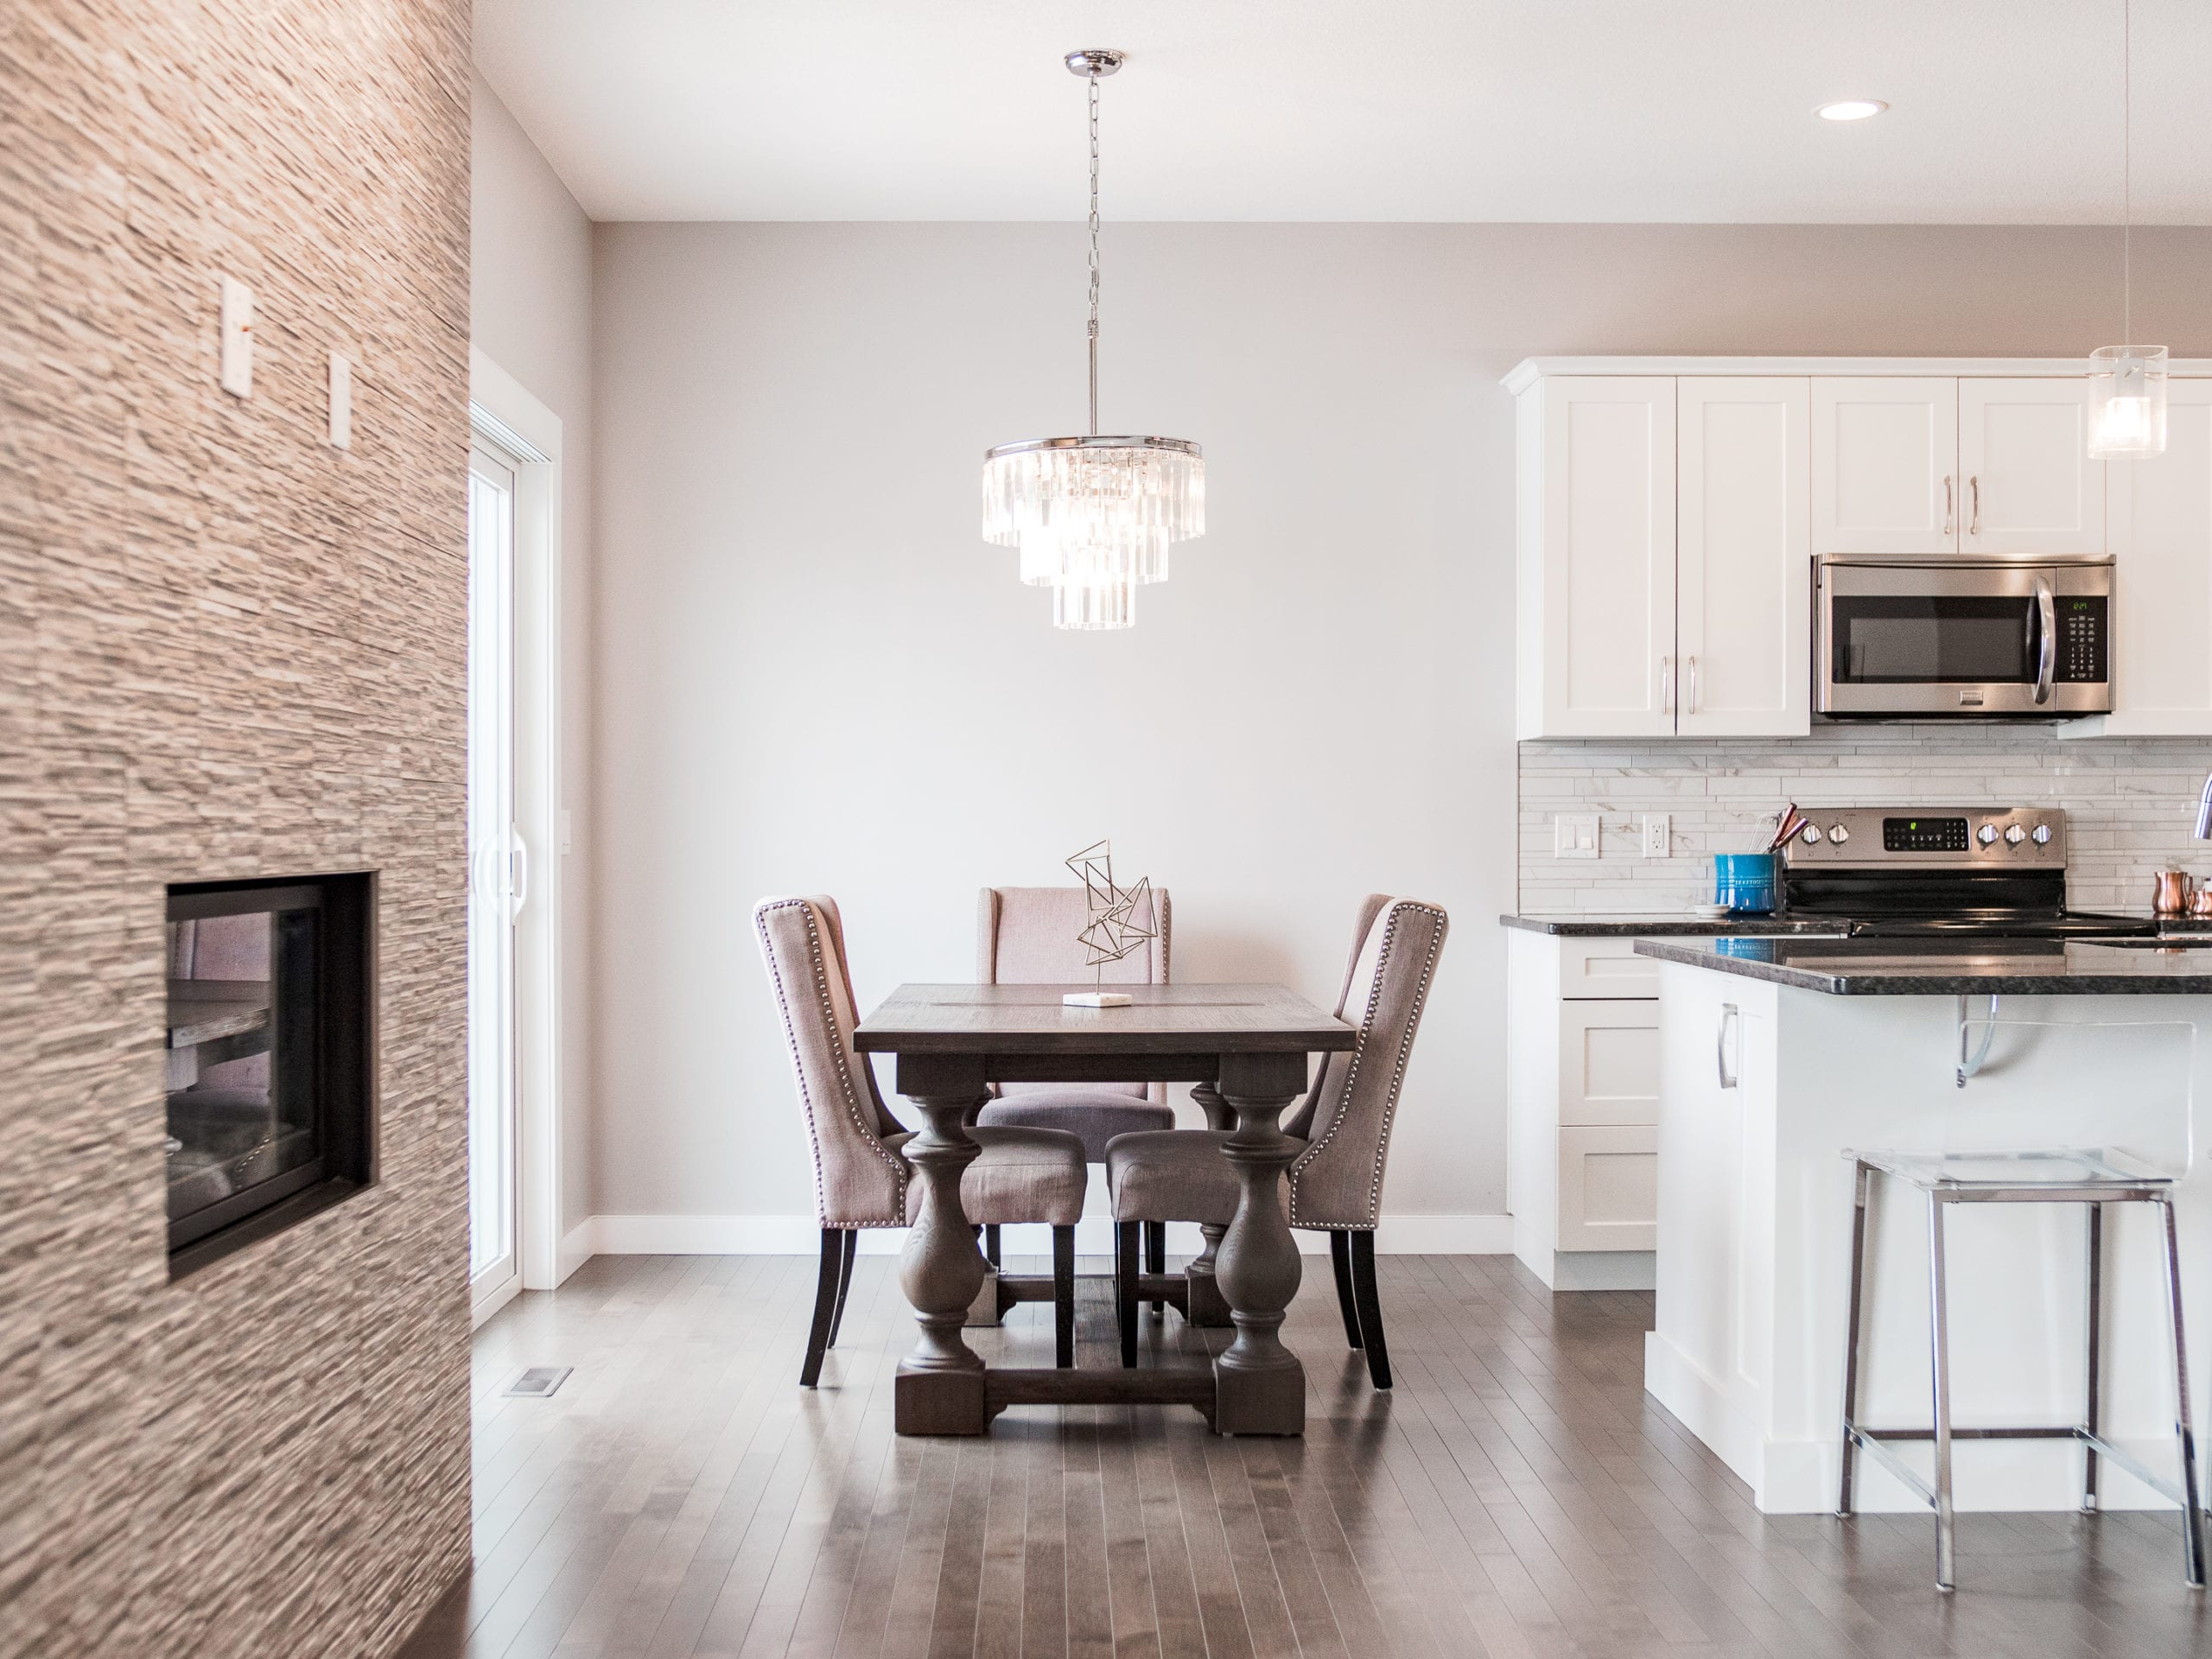 Hello Gorgeous - 1306 Kings Heights Way SE, Airdrie AB. - Tara Molina Real Estate (10 of 53)